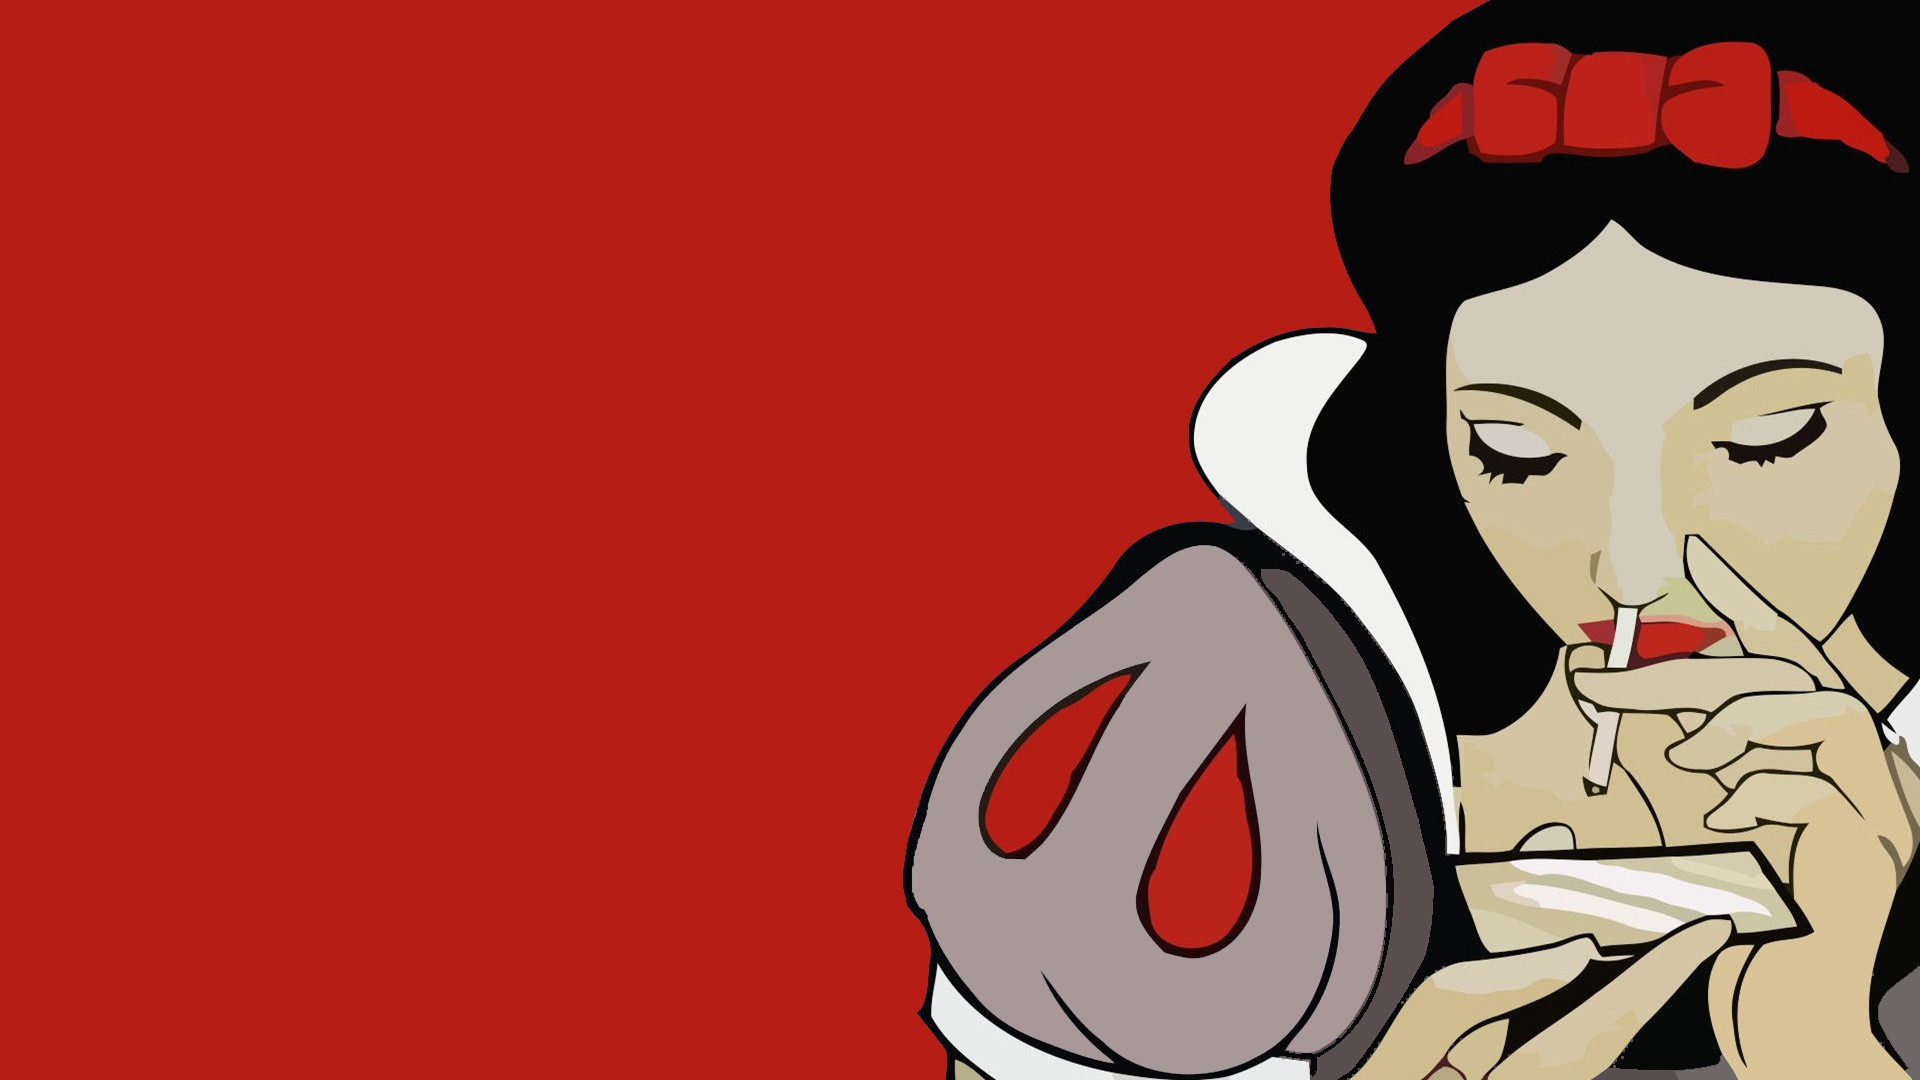 Snow White cocaine Wallpaper hd background   HD Wallpapers 1920x1080